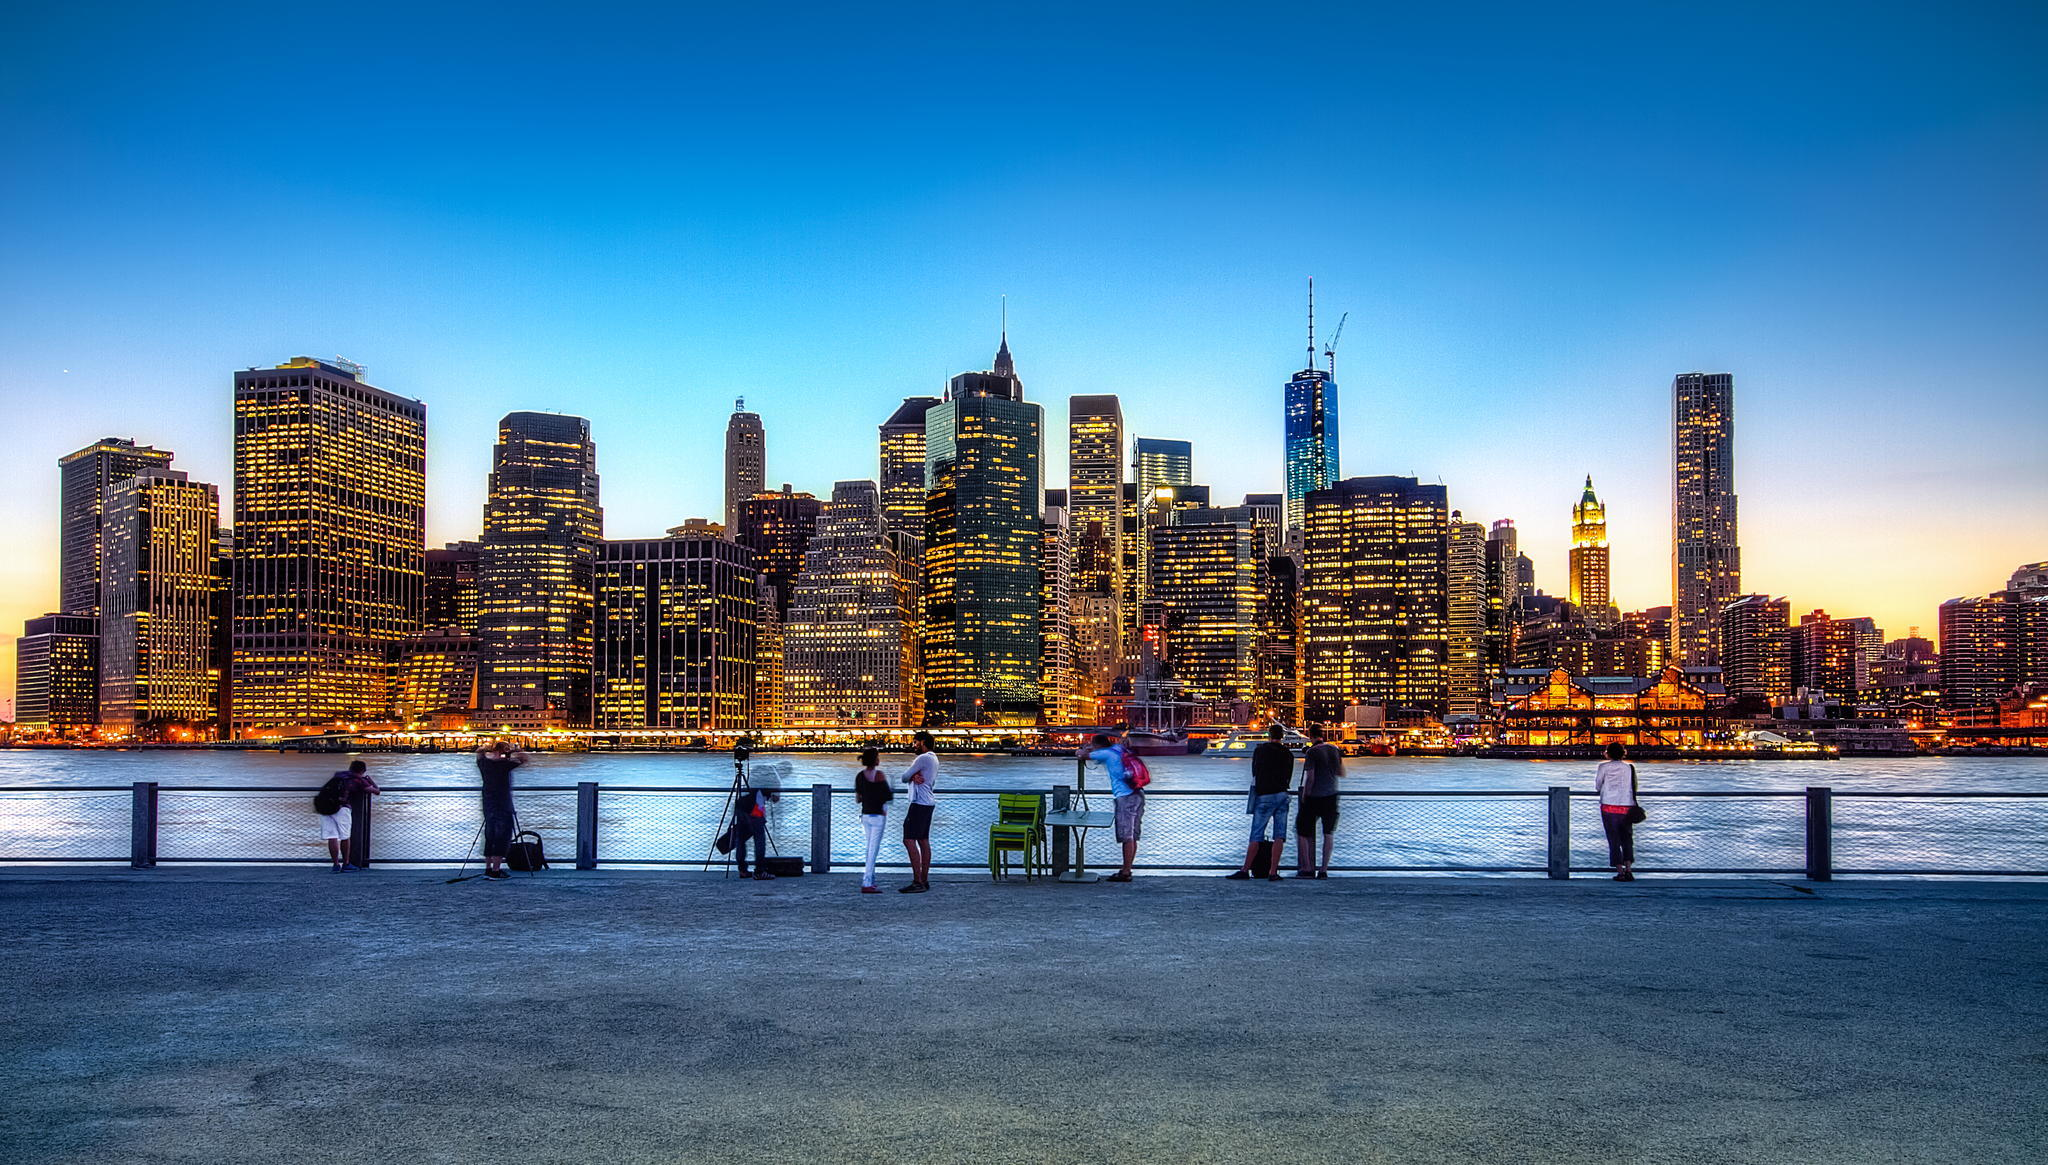 New york beautiful city hd wallpapers all hd wallpapers for New york city beautiful